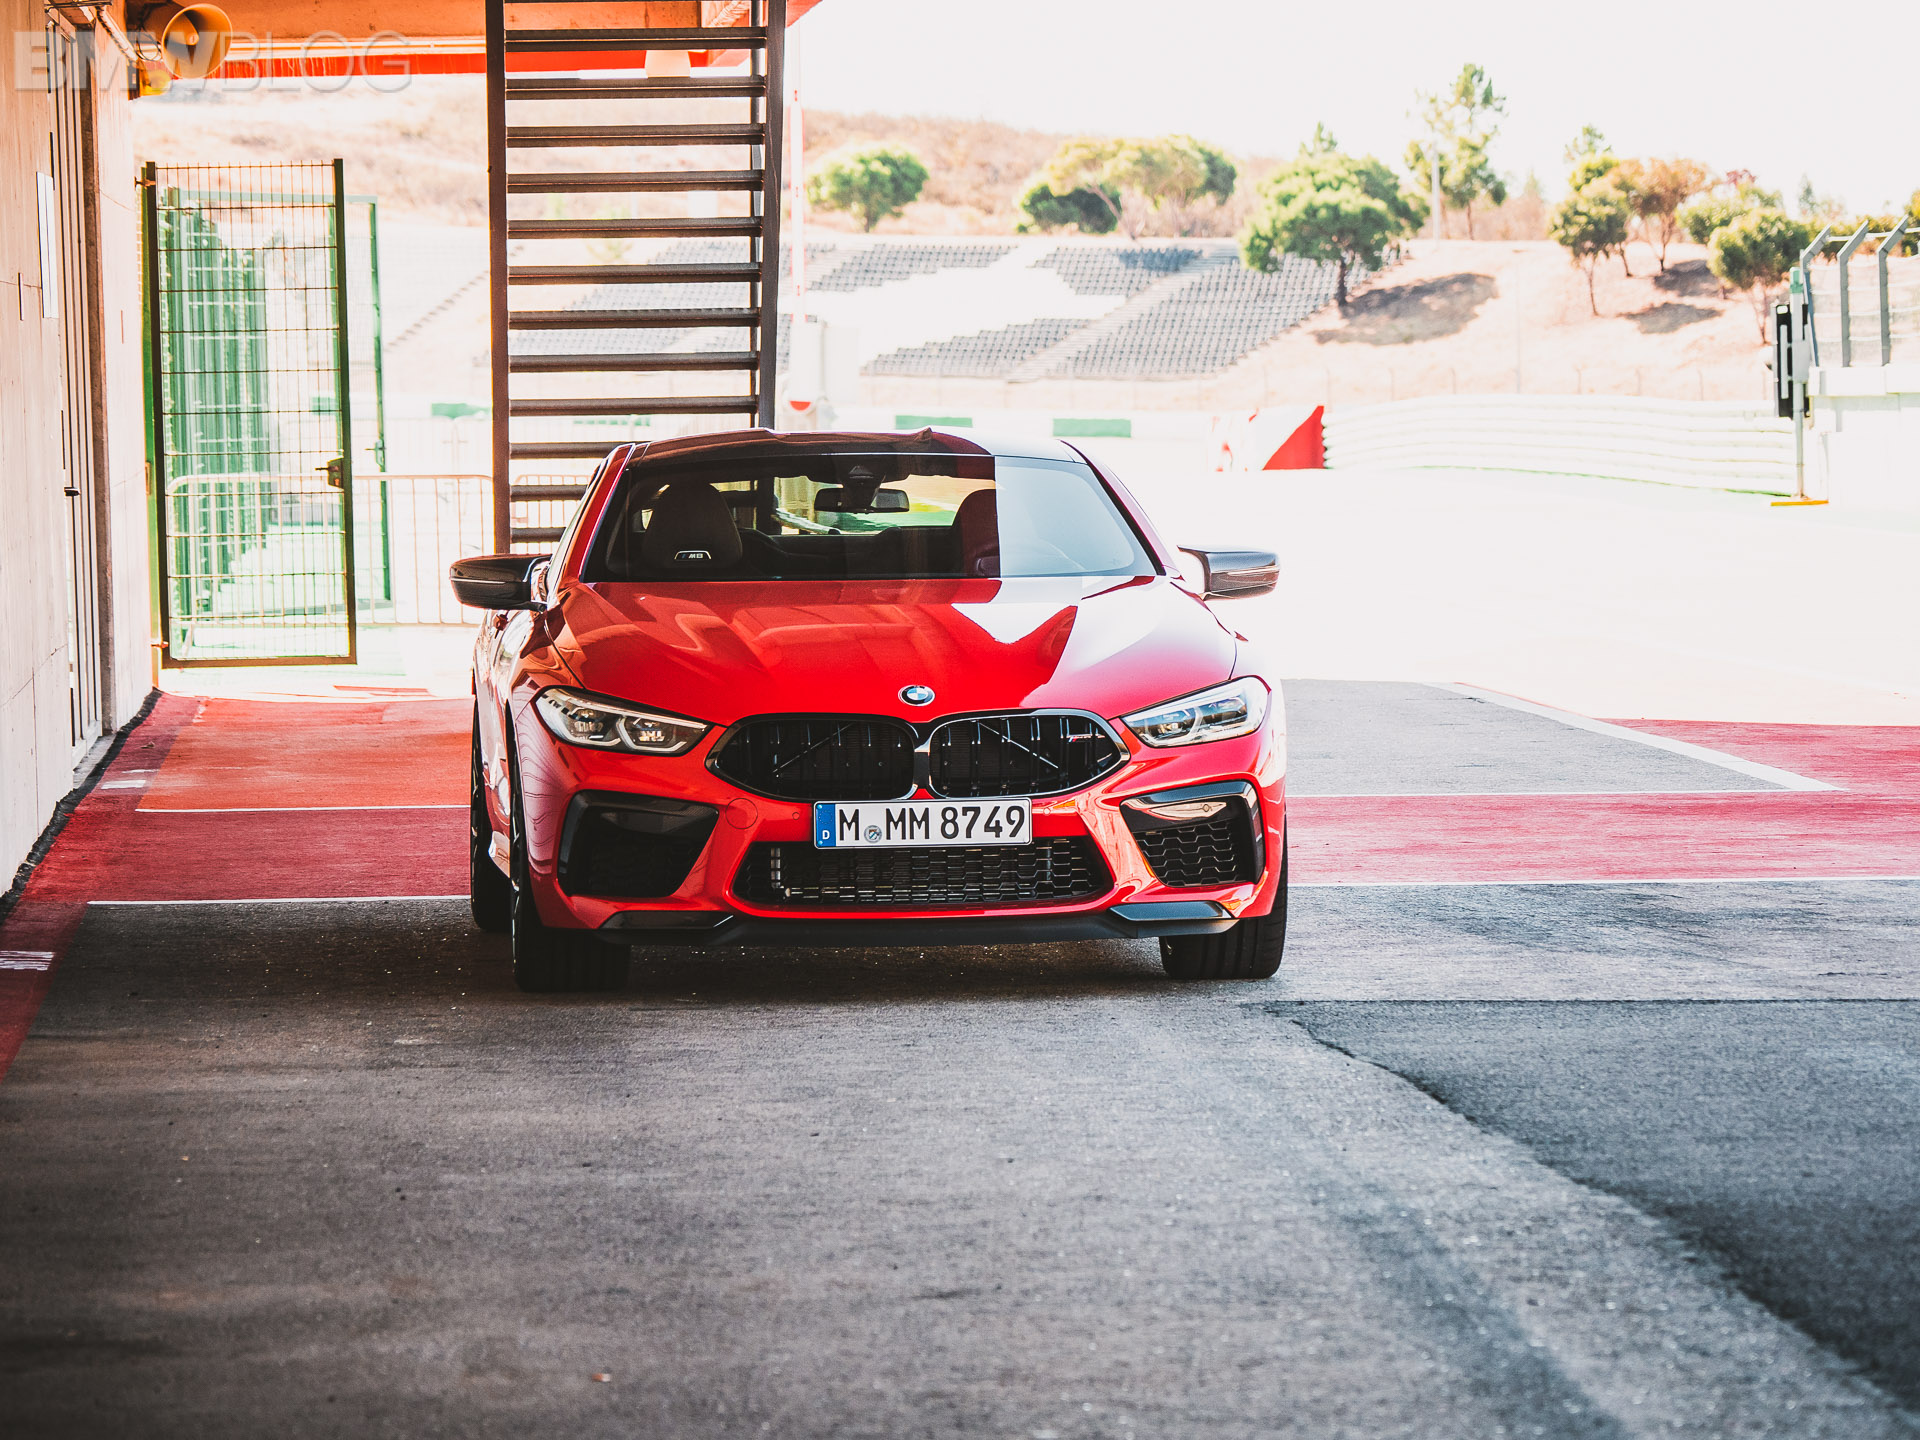 2020 BMW M8 COUPE FIRE RED 1